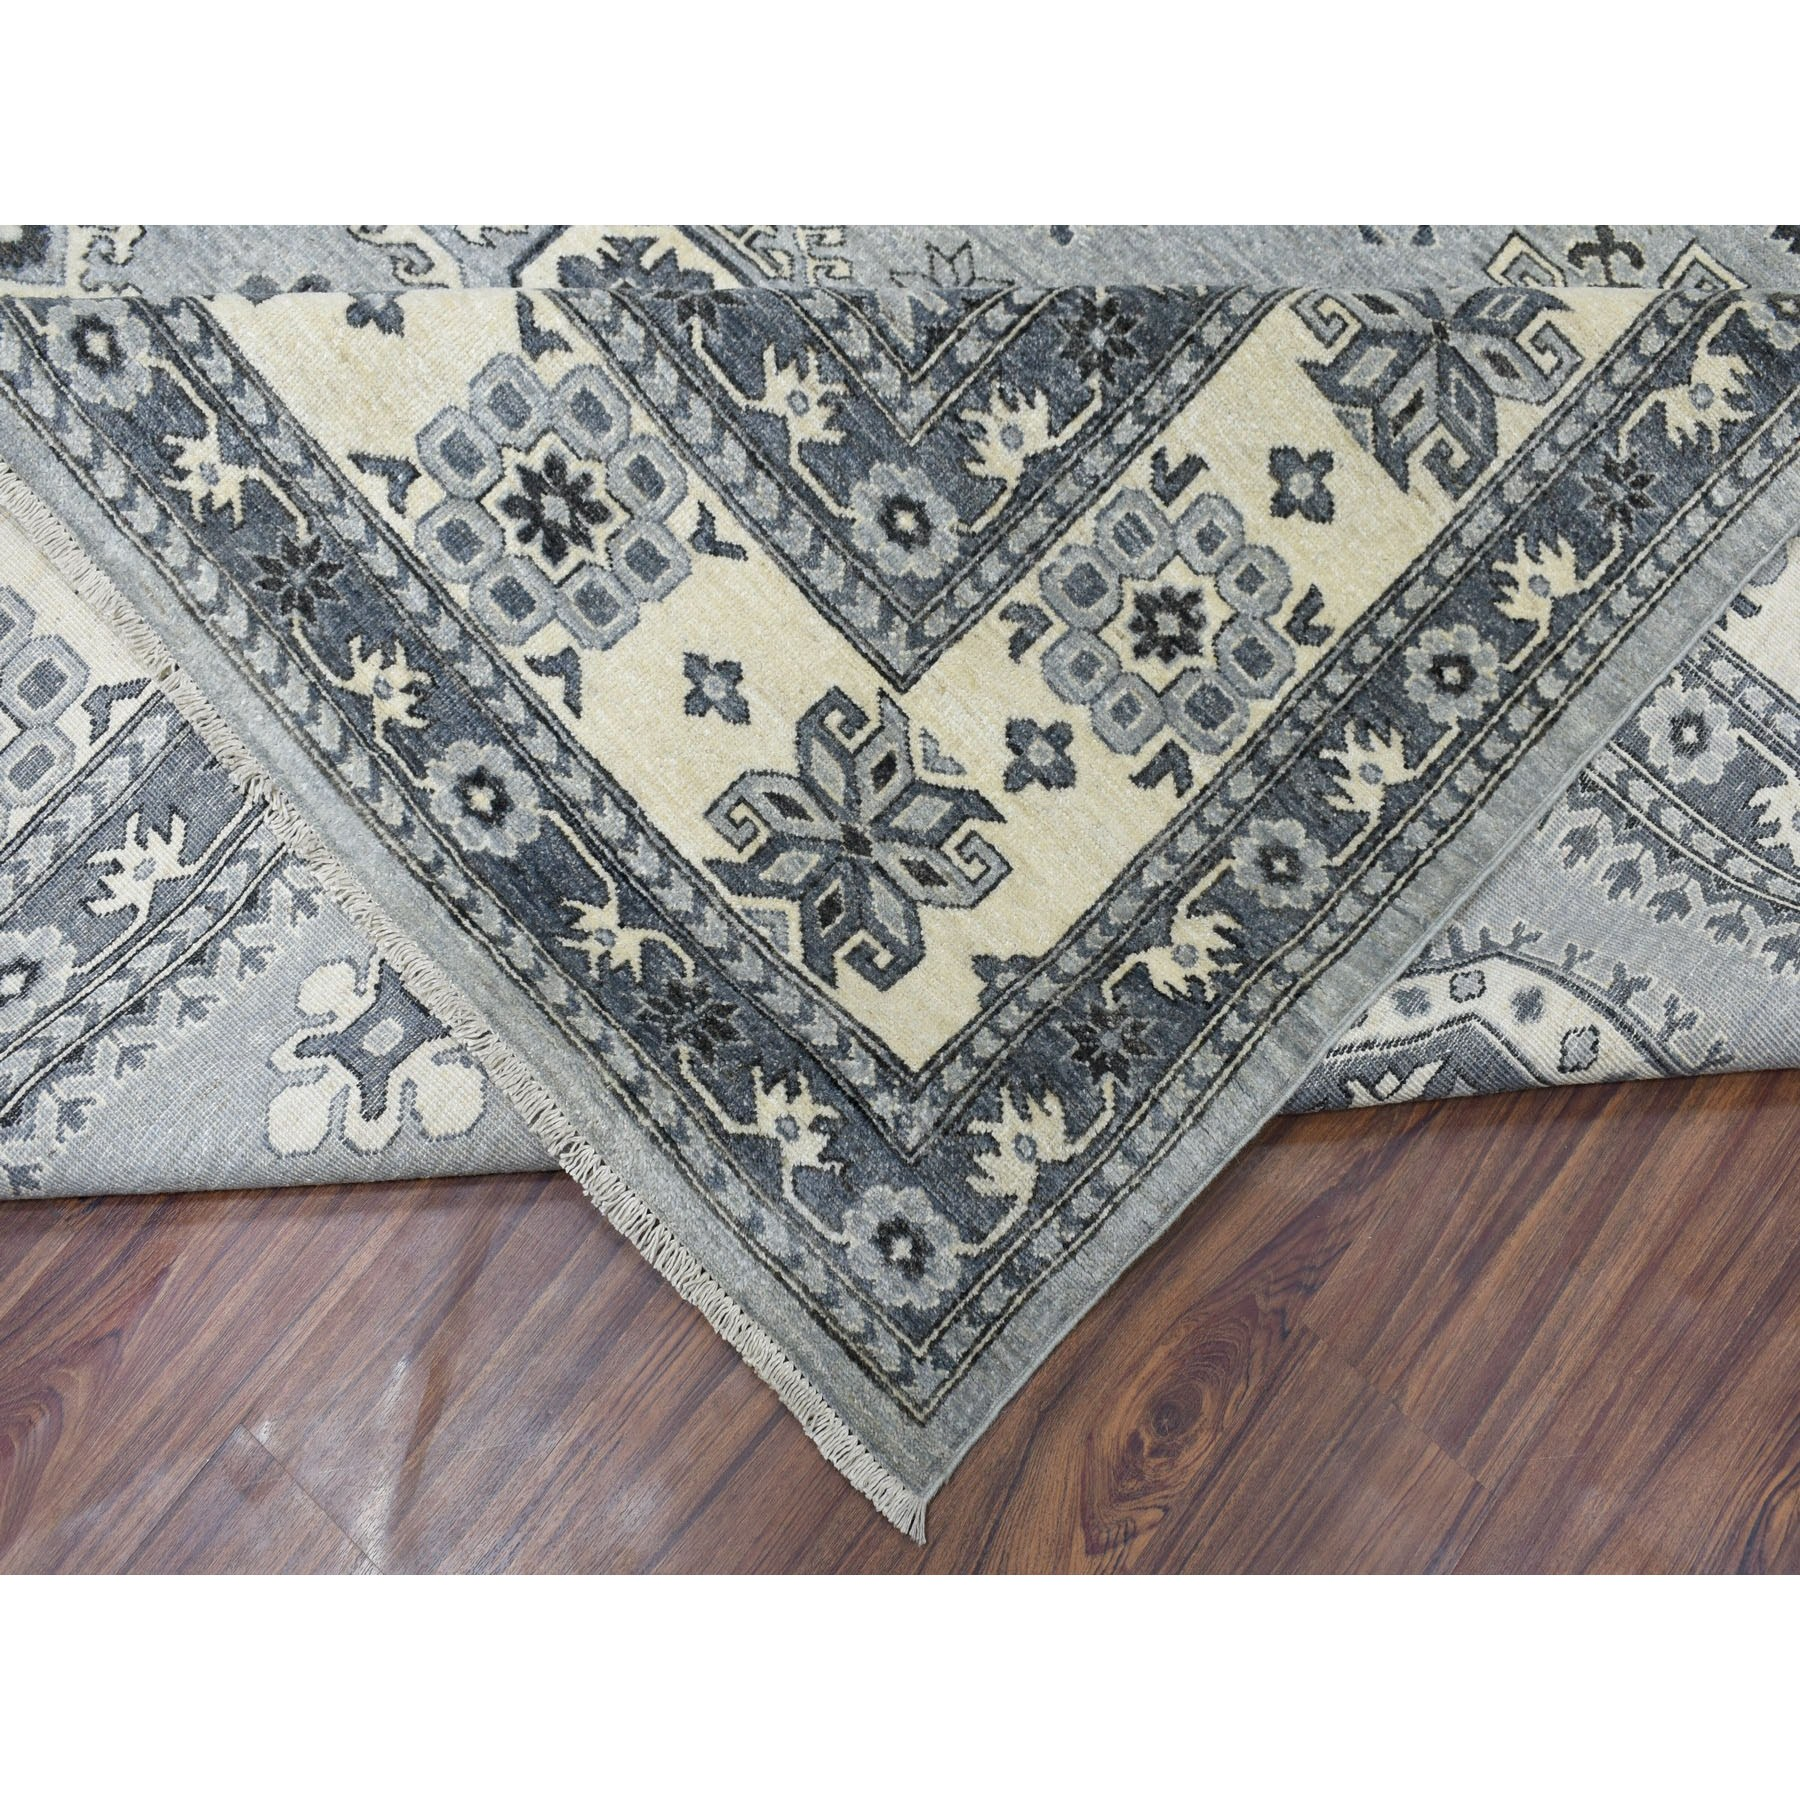 9-9 x13-7  Gray Pure Wool Hand-Knotted Peshawar With Karajeh Design Oriental Rug